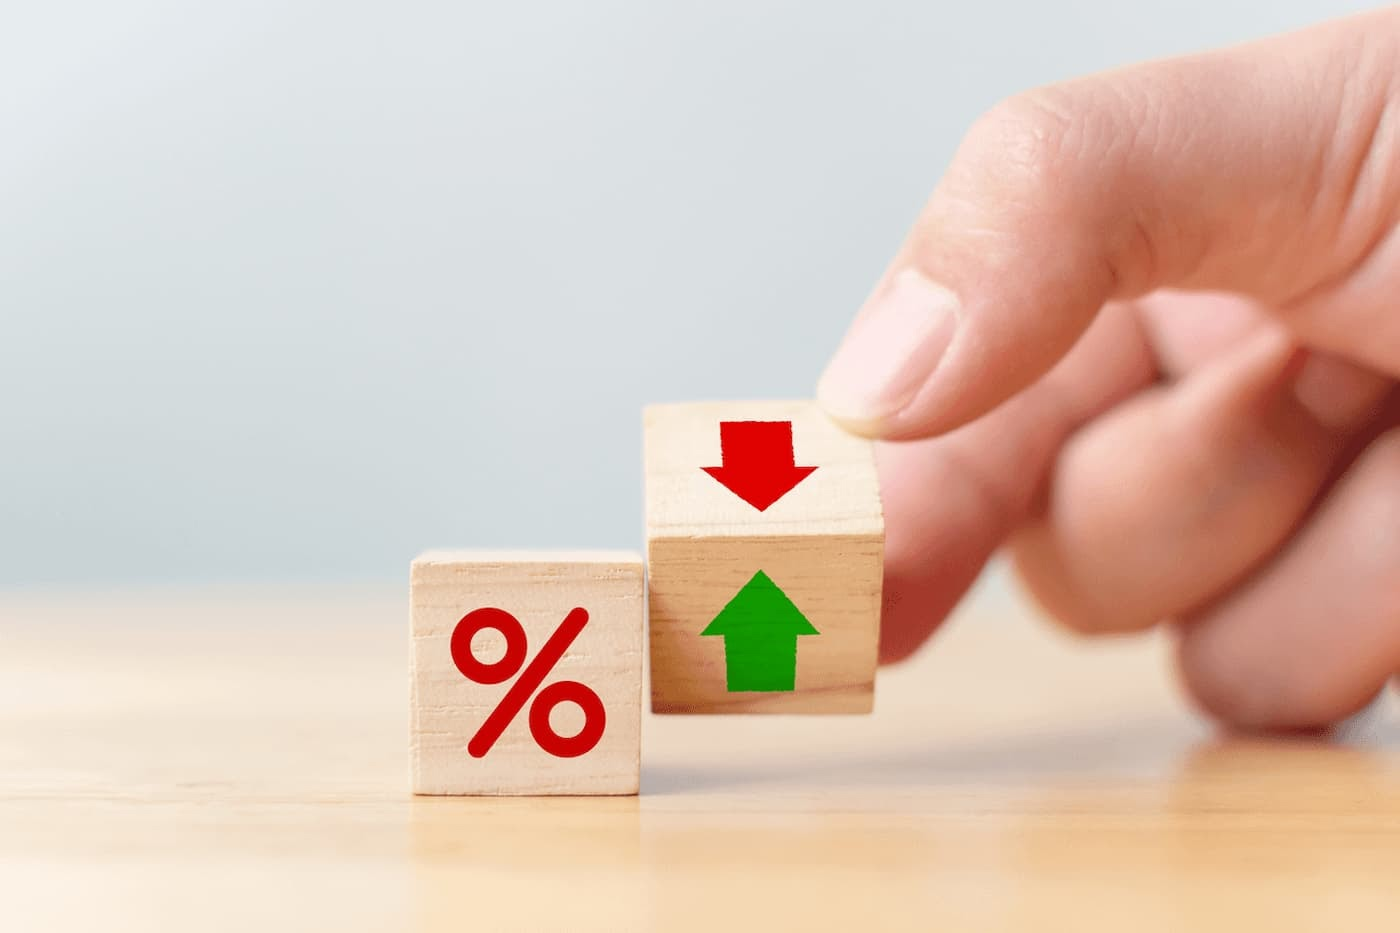 Interest rates affecting the single-family rental market